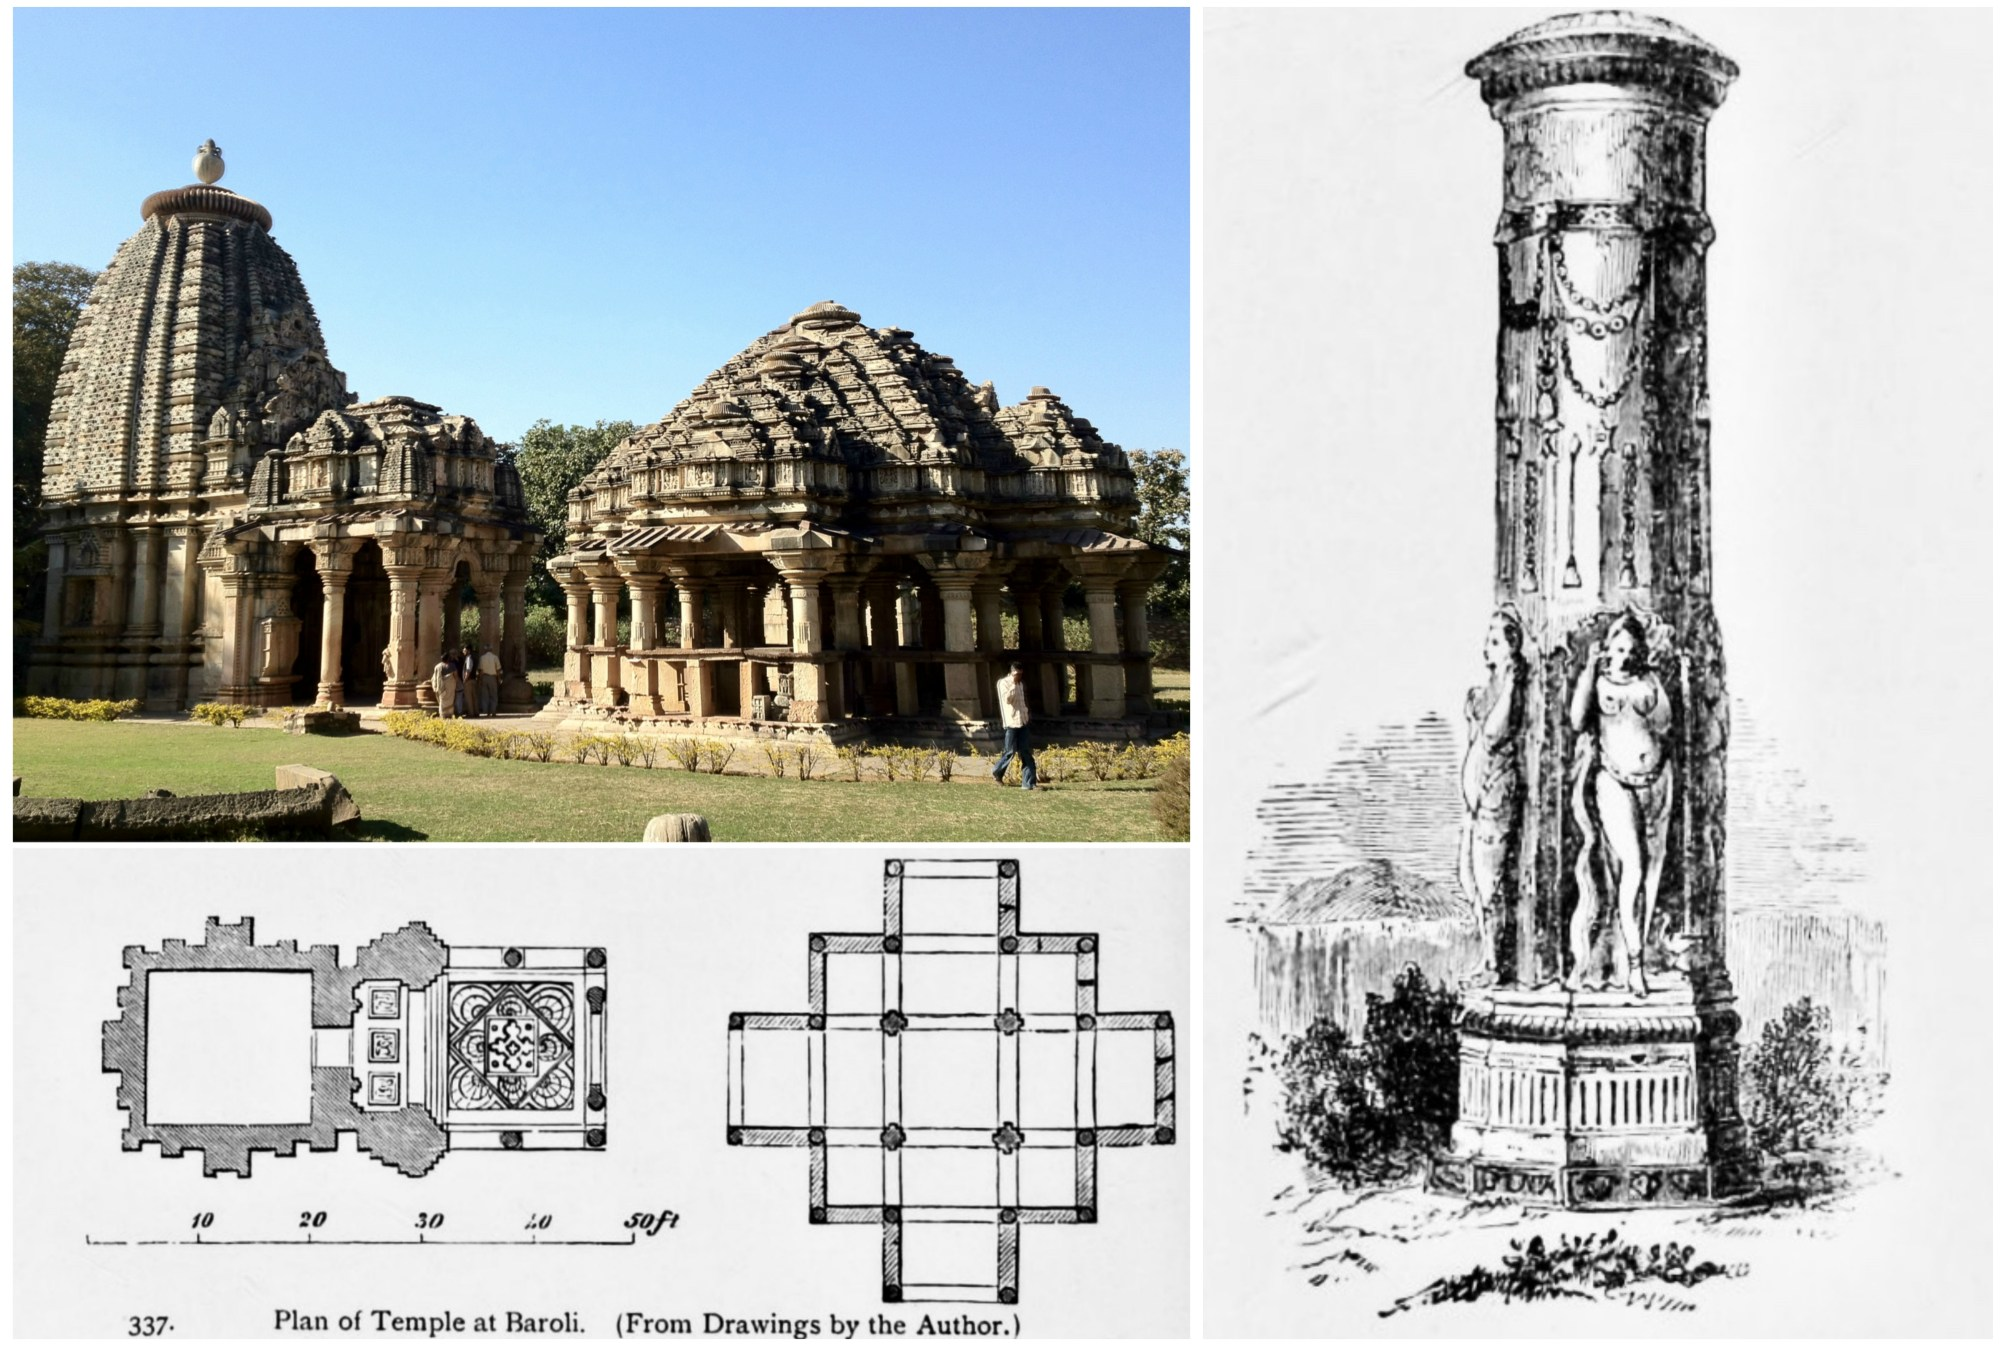 hight resolution of the early 10th century baroli temple complex in rajasthan illustrating the nagara architecture